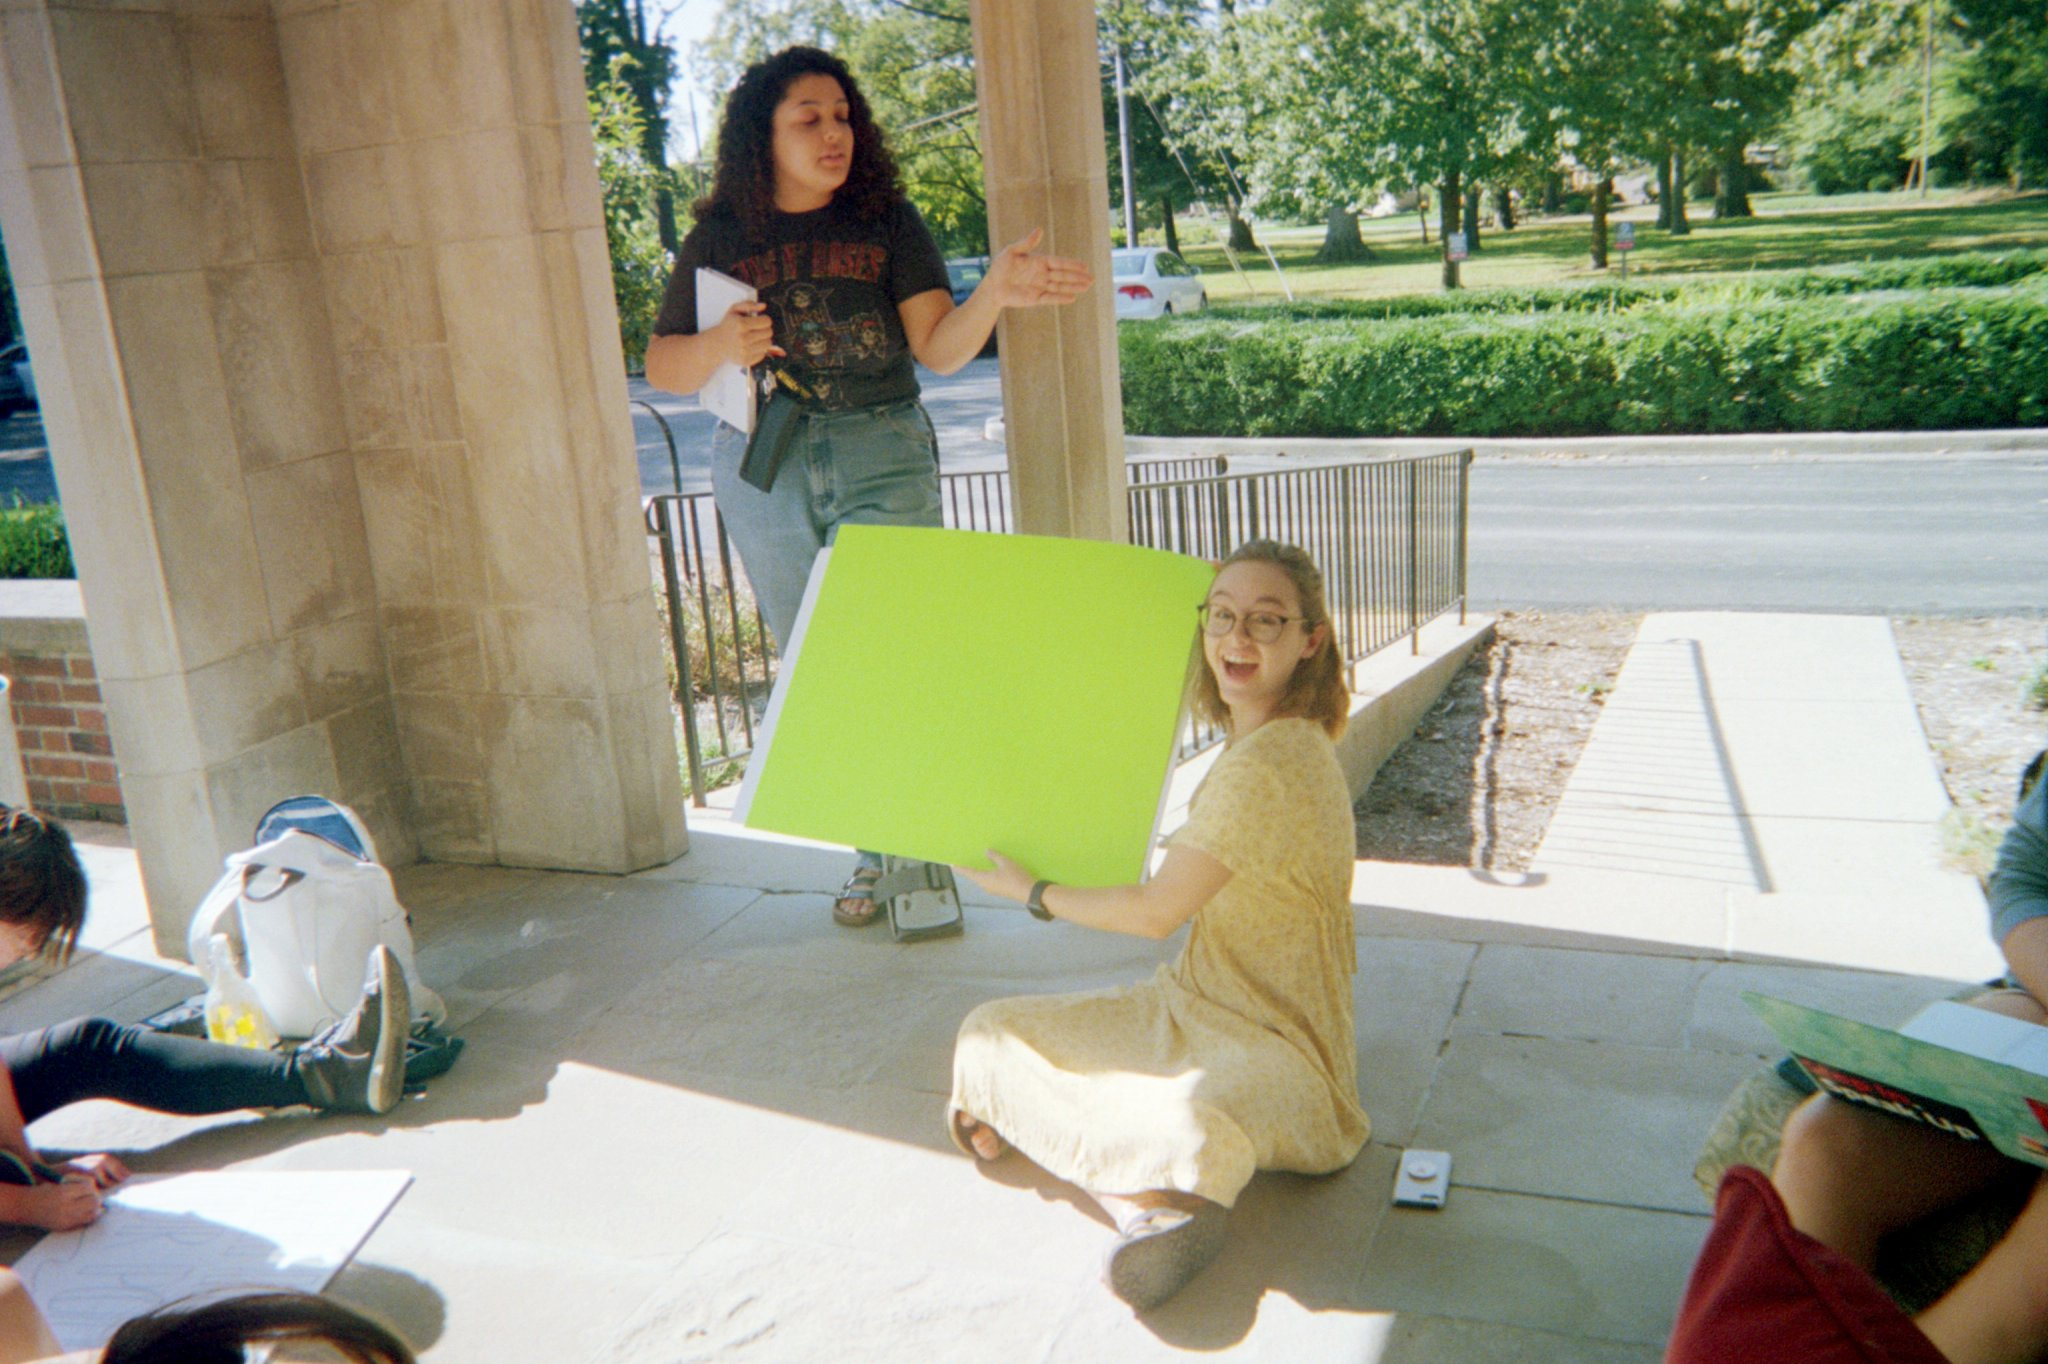 Hannah holding up her sign, with Lizzy in the background.